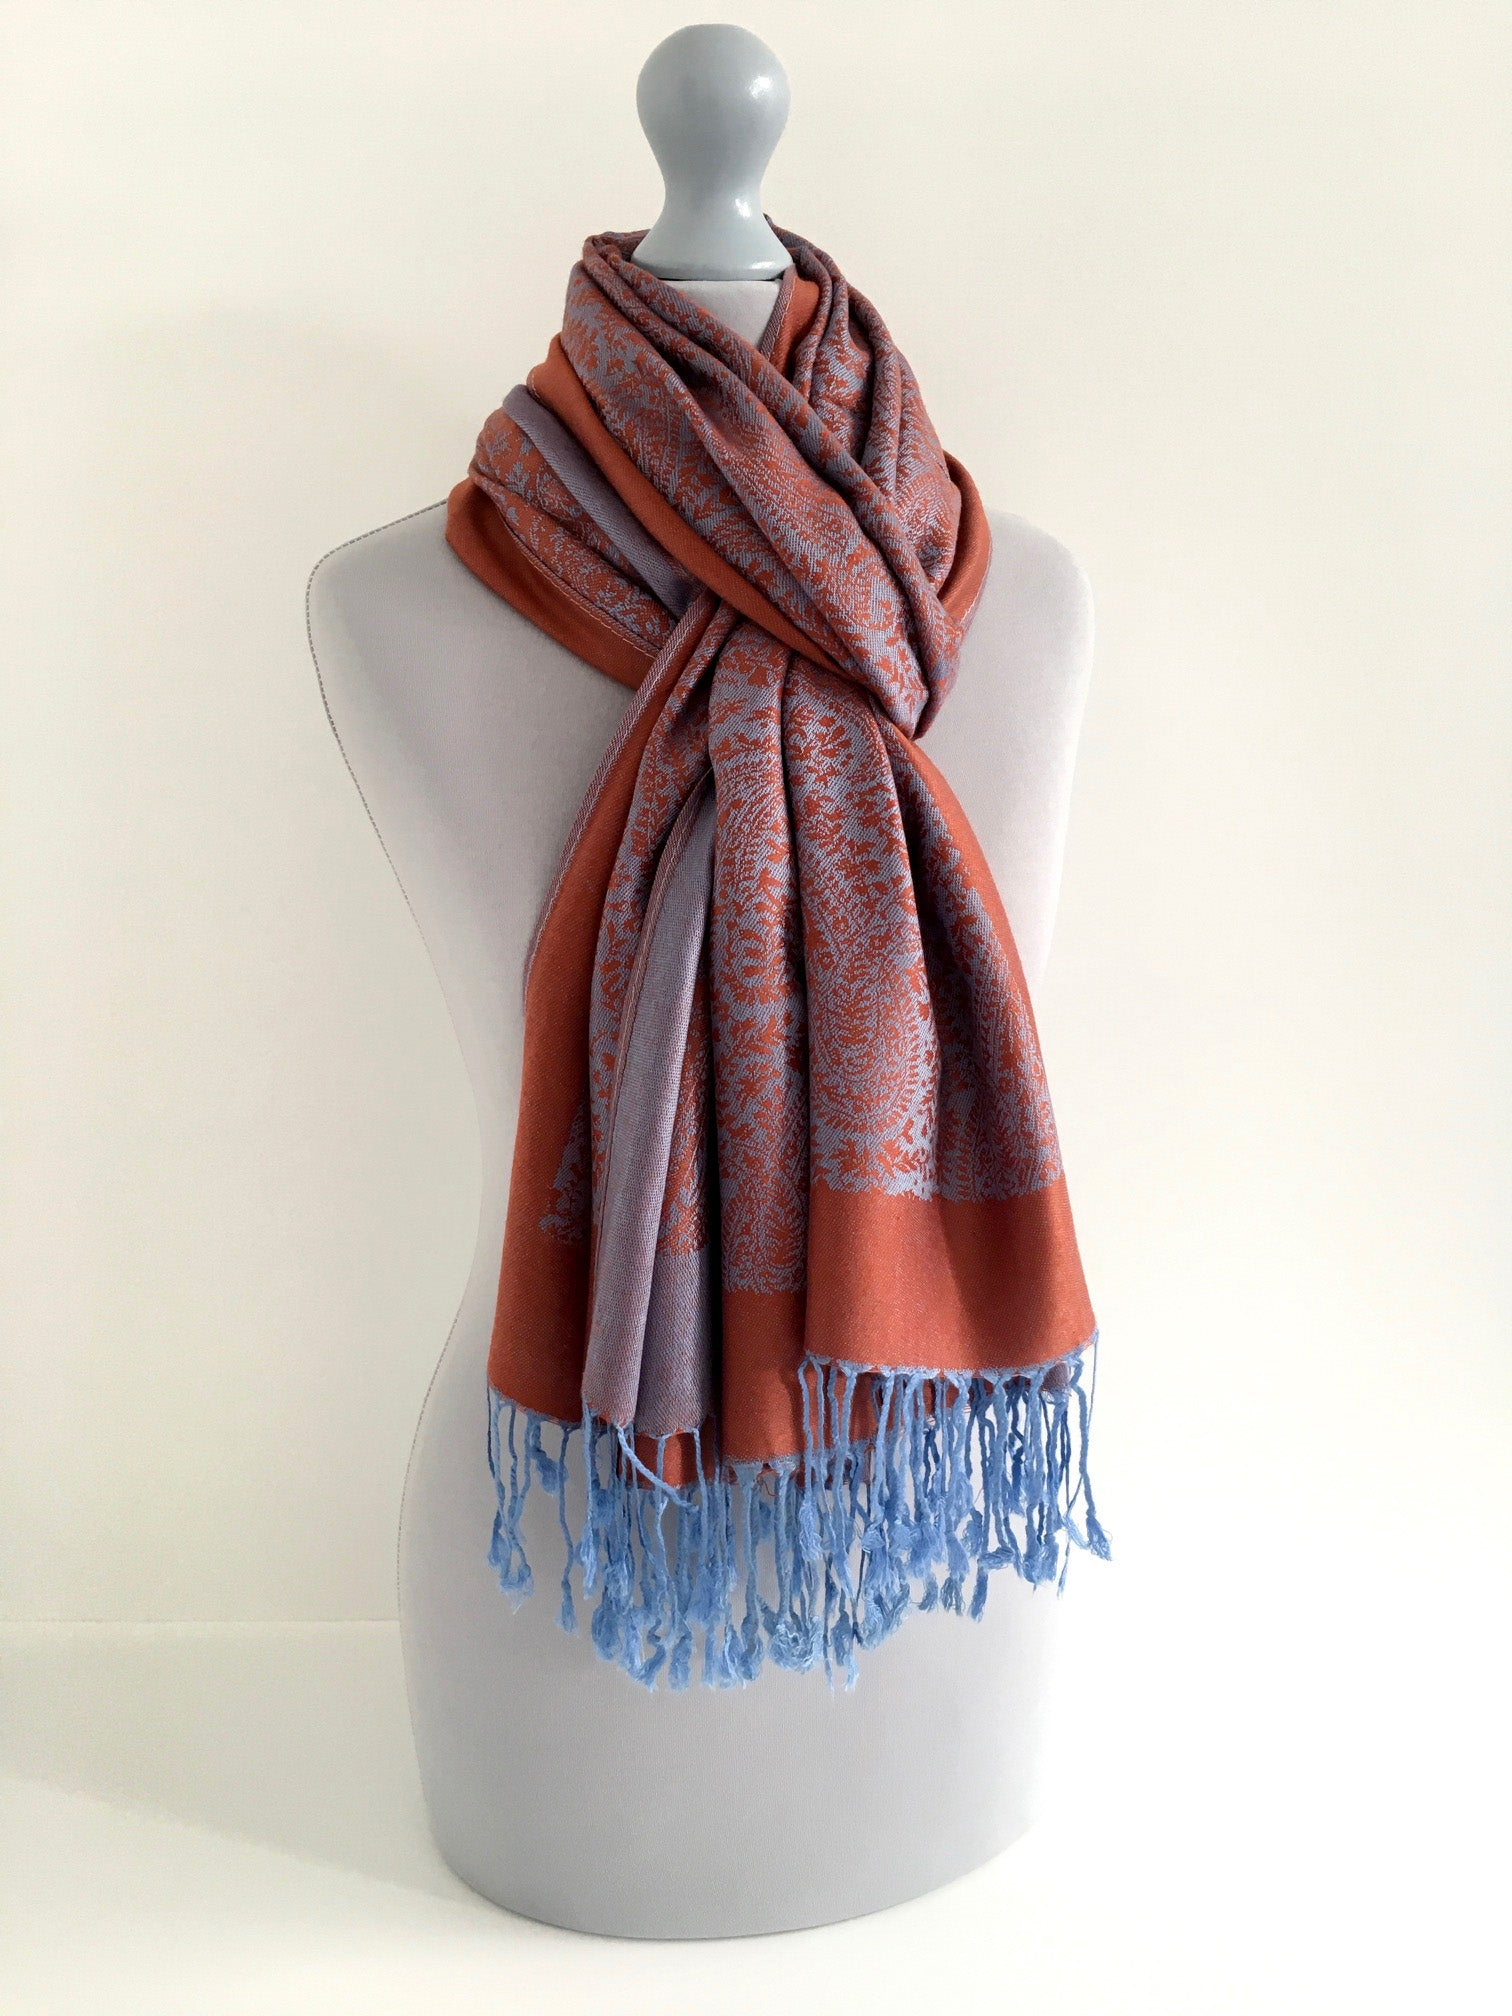 A-SHU BLUE ORANGE PAISLEY PRINT REVERSIBLE PASHMINA SHAWL SCARF - A-SHU.CO.UK